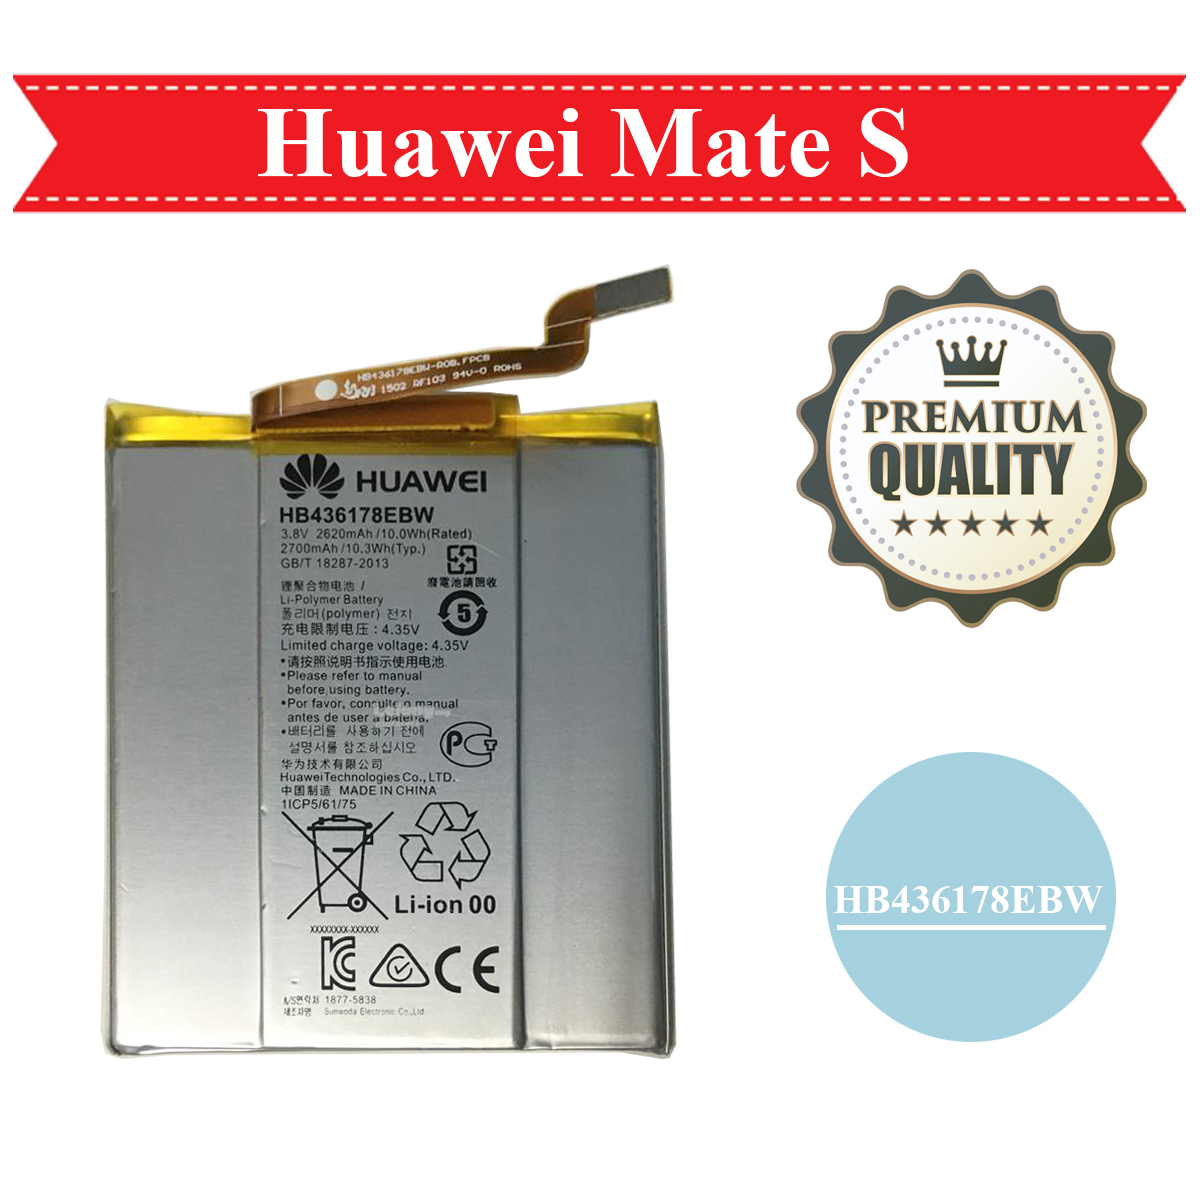 Huawei Mate S Battery Crr Cl00 Crr Ul00 Hb436178ebw Battery For Mates 2700mah Buy Online At Best Prices In Pakistan Daraz Pk